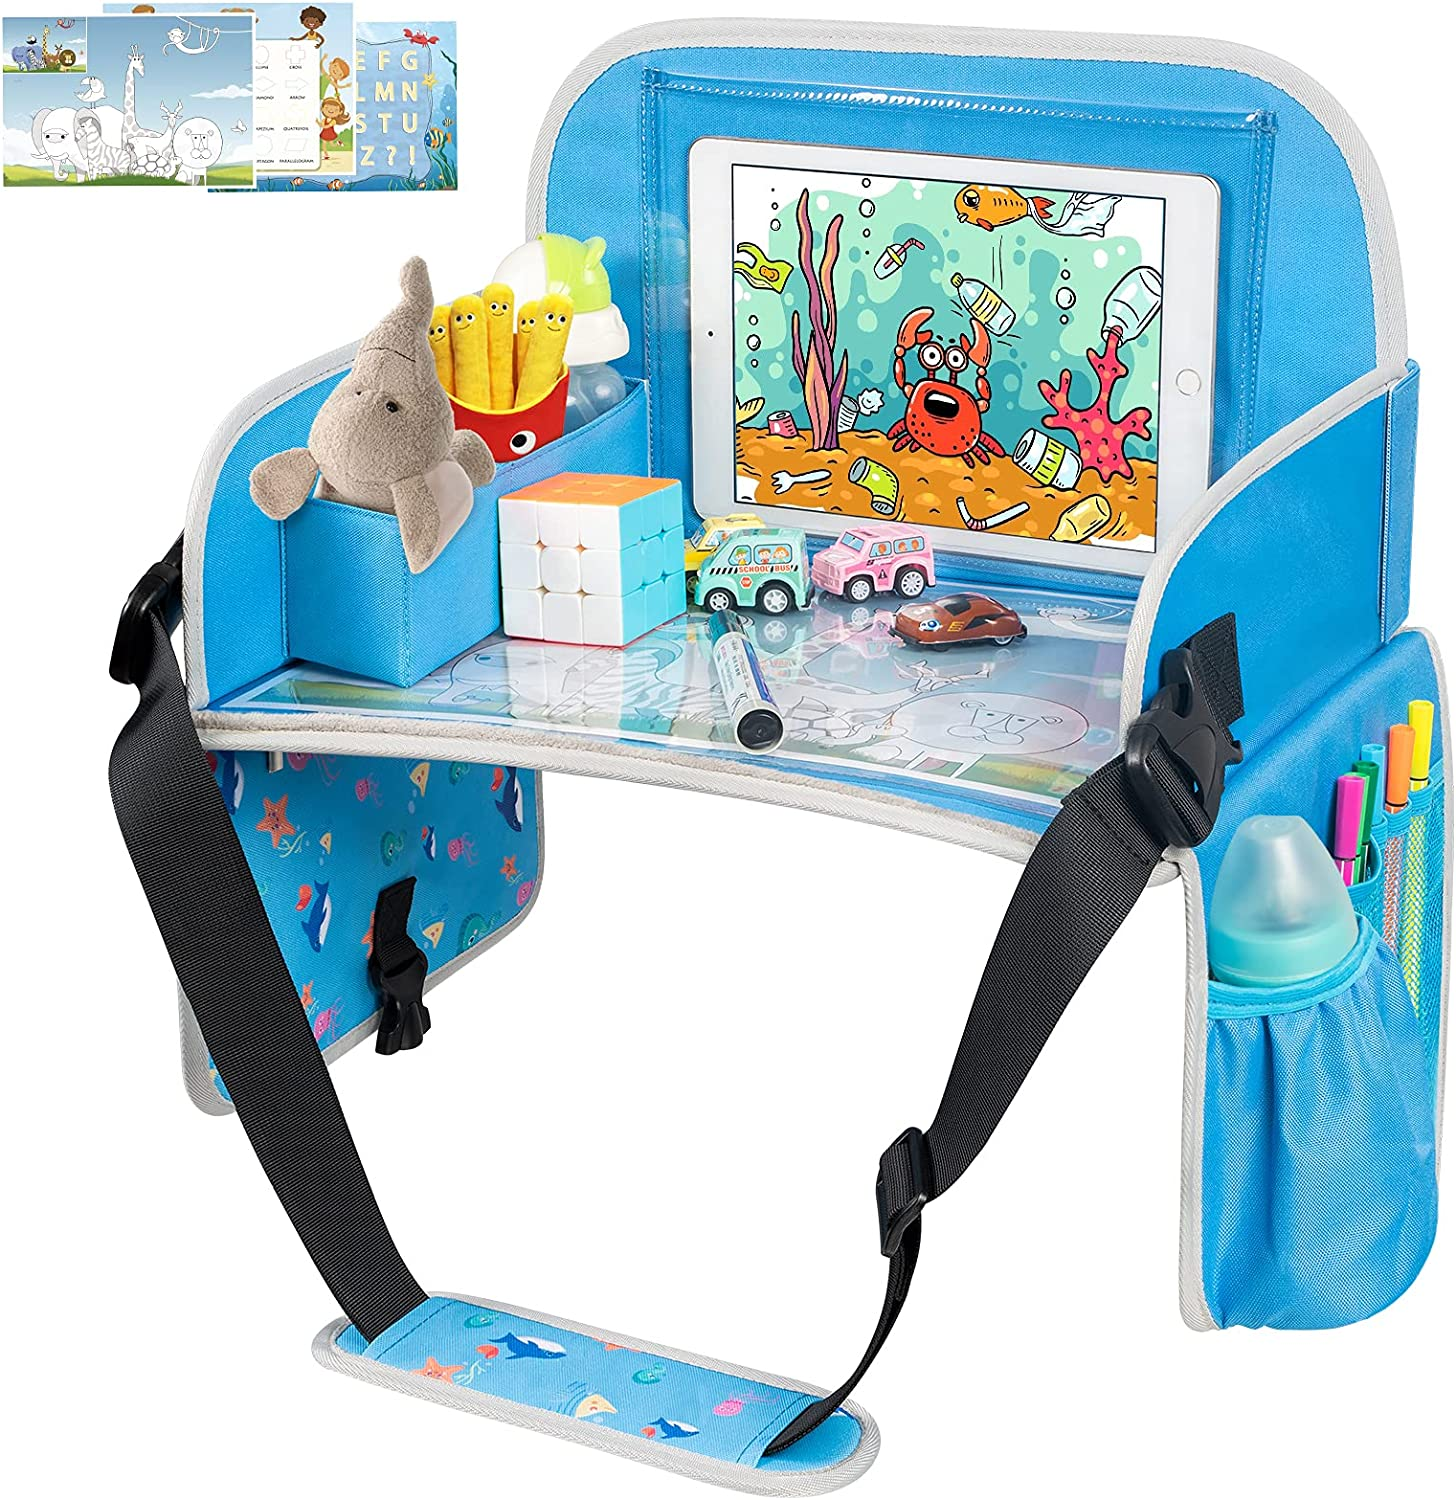 Kids Travel Tray, Car Seat Trays for Kids Travel, Toddler Travel Tray with Tablet Holder, Travel Accessories for Kids with Dry Erase Board & Storage Pocket, Road Trip Essentials Kids Tray, Blue